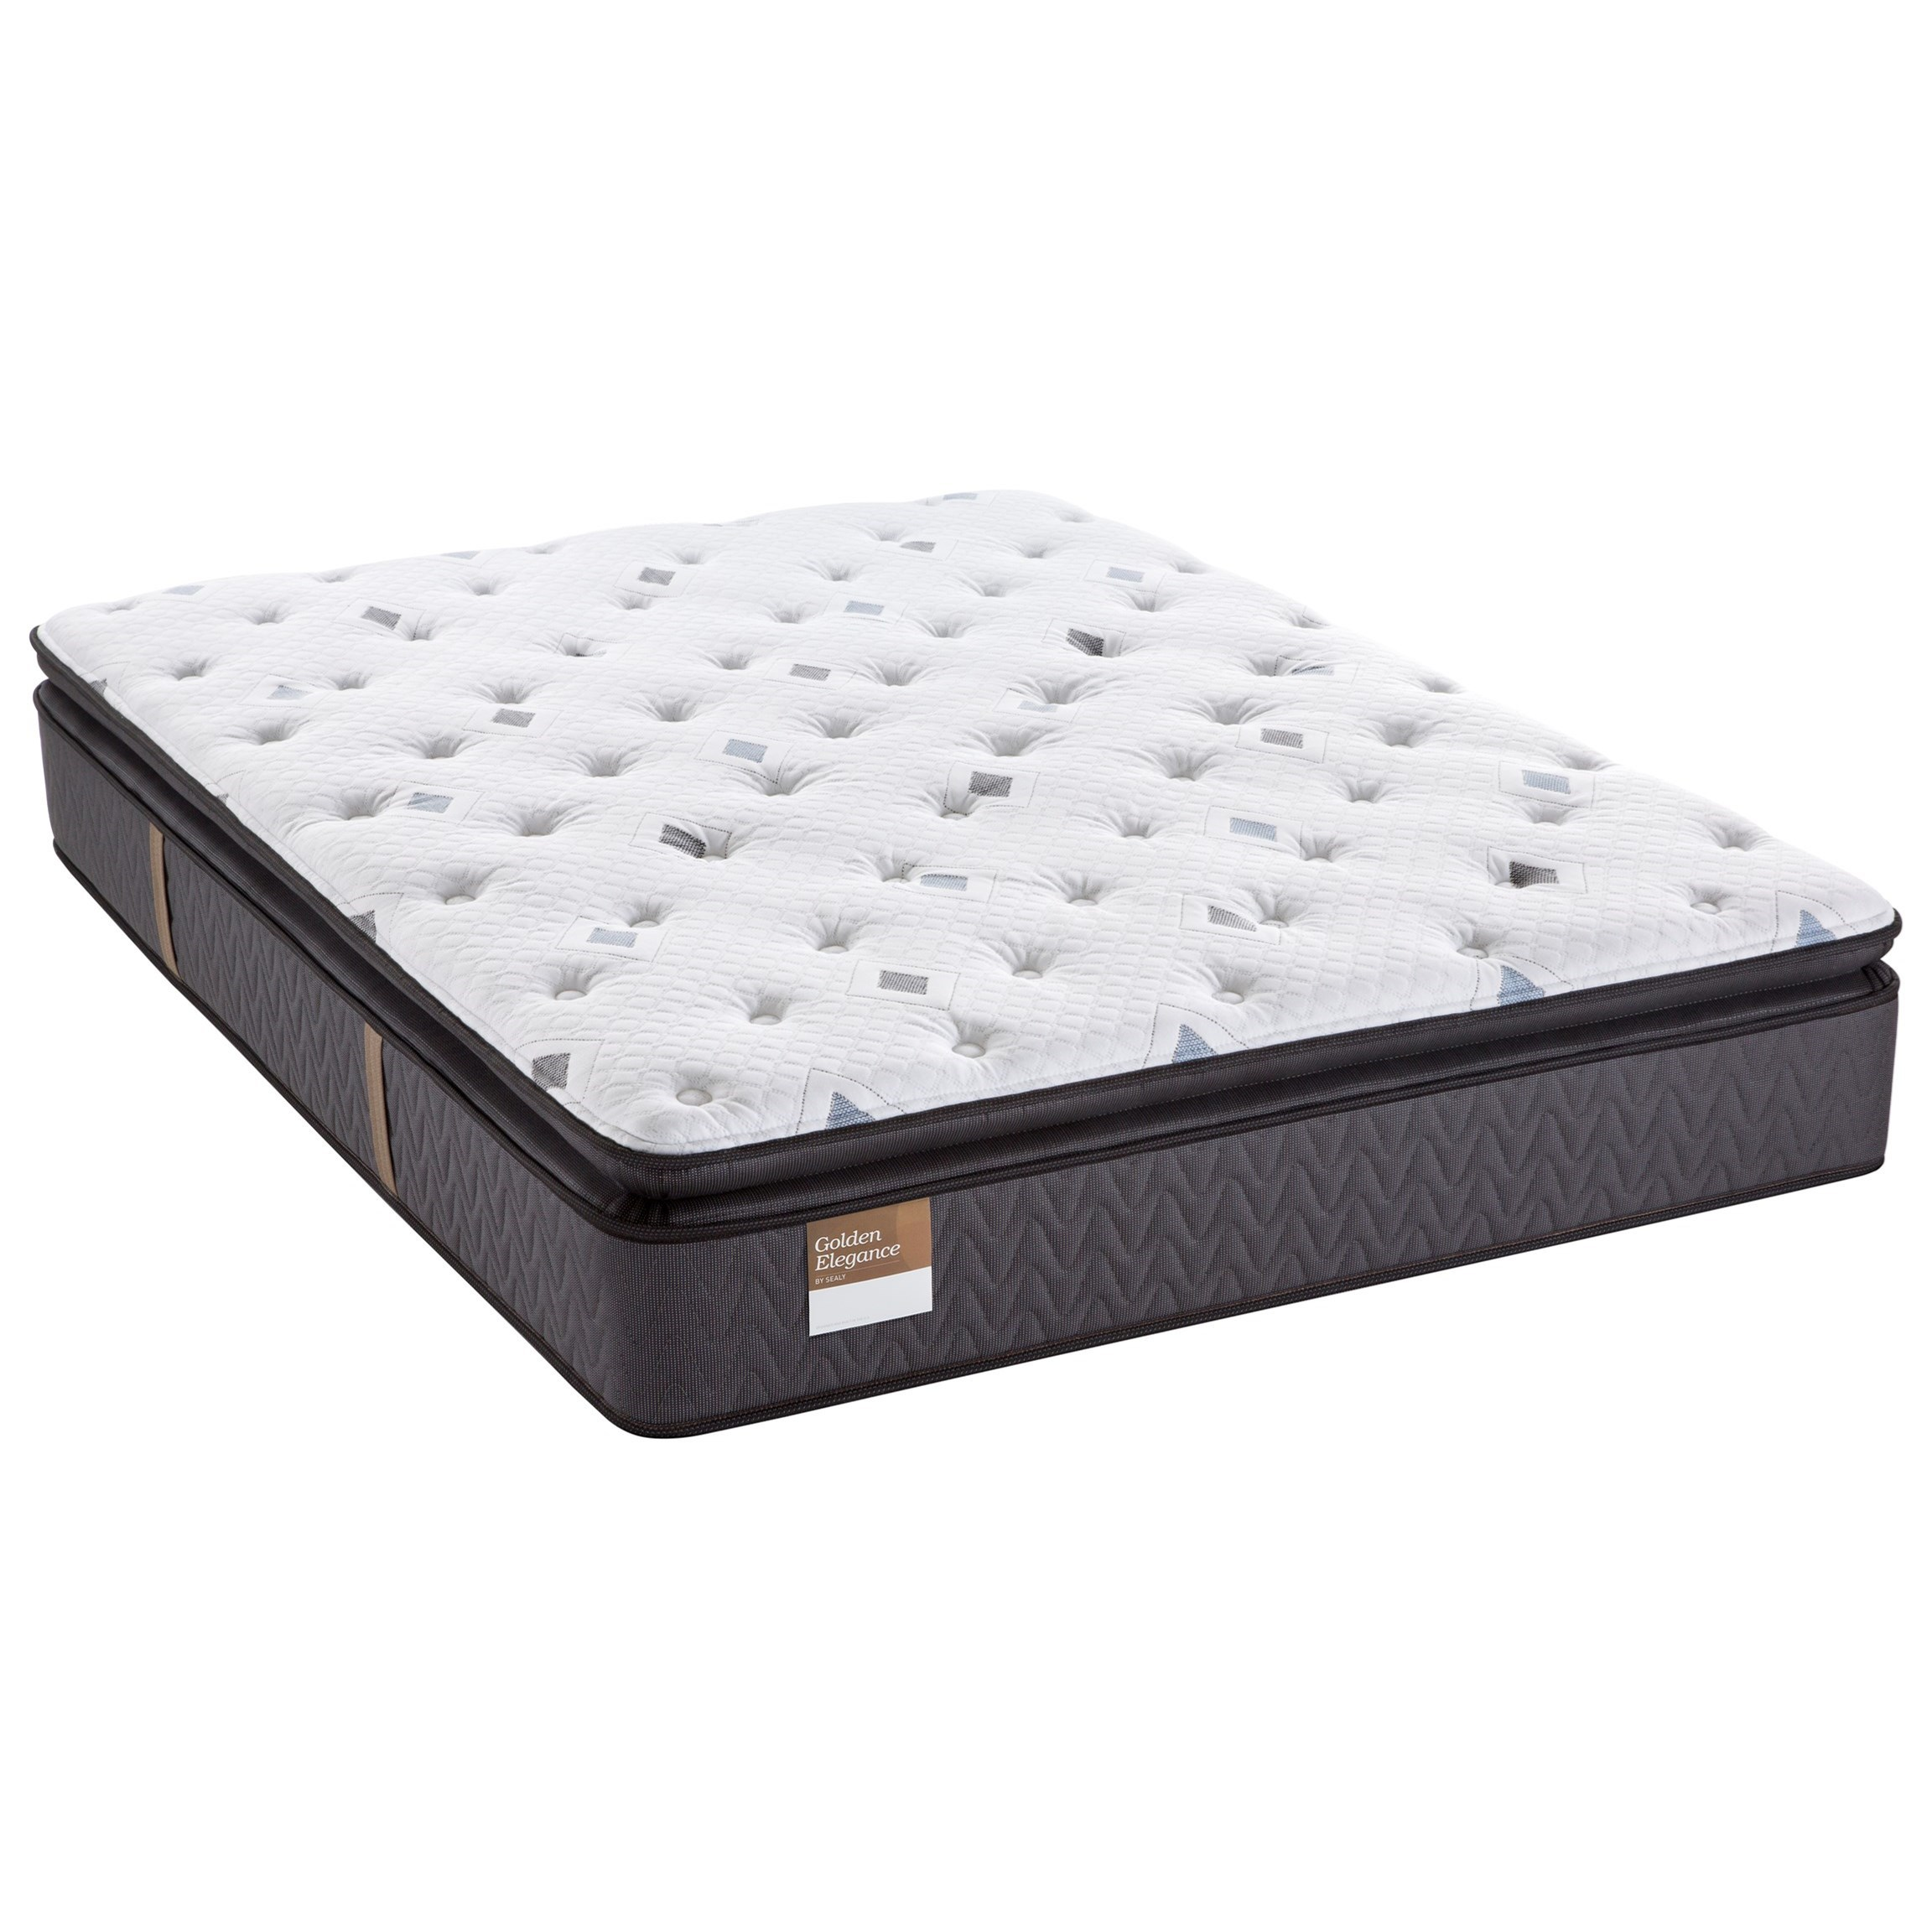 "Sealy Golden Elegance Gilded Breath Queen 14"" Plush Pillow Top Mattress -  Item Number:"